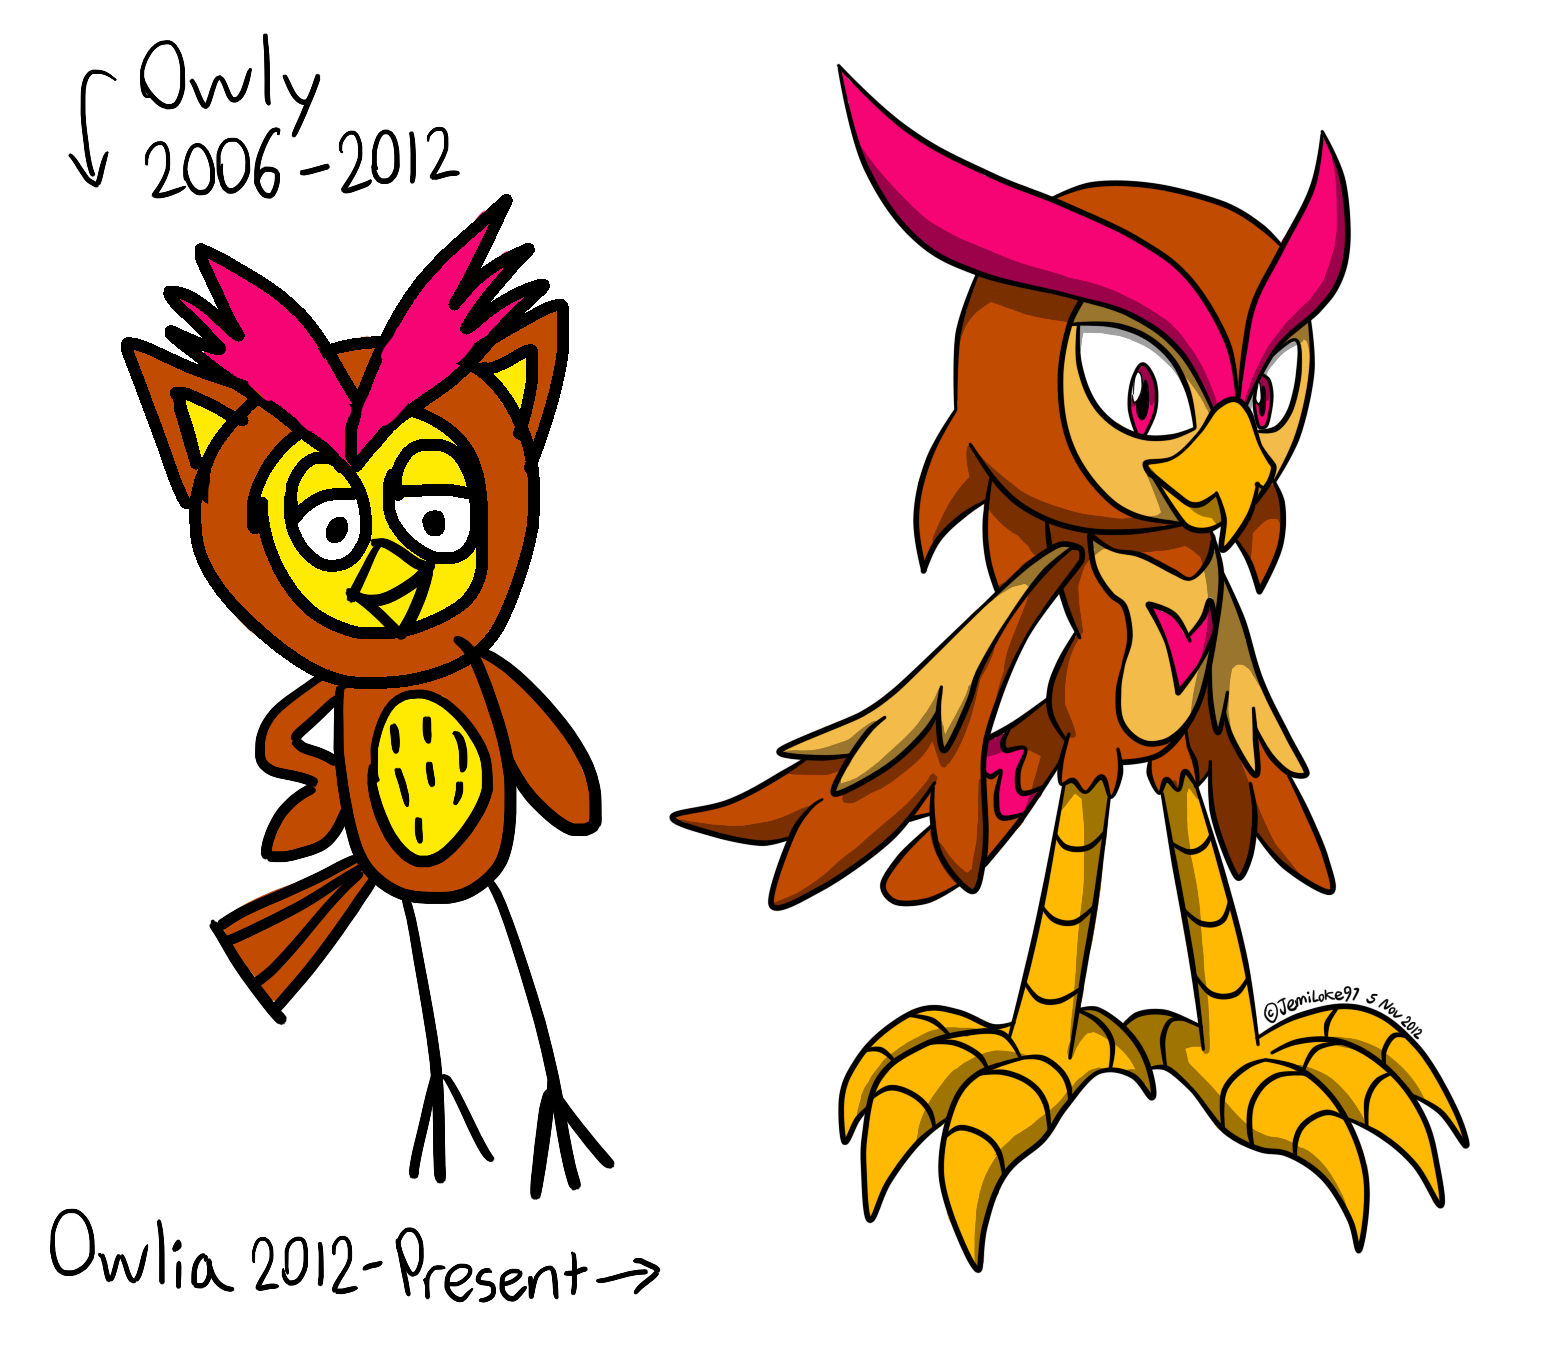 [BS] Owlia the Owl (bio) - Past and present by JemiDove